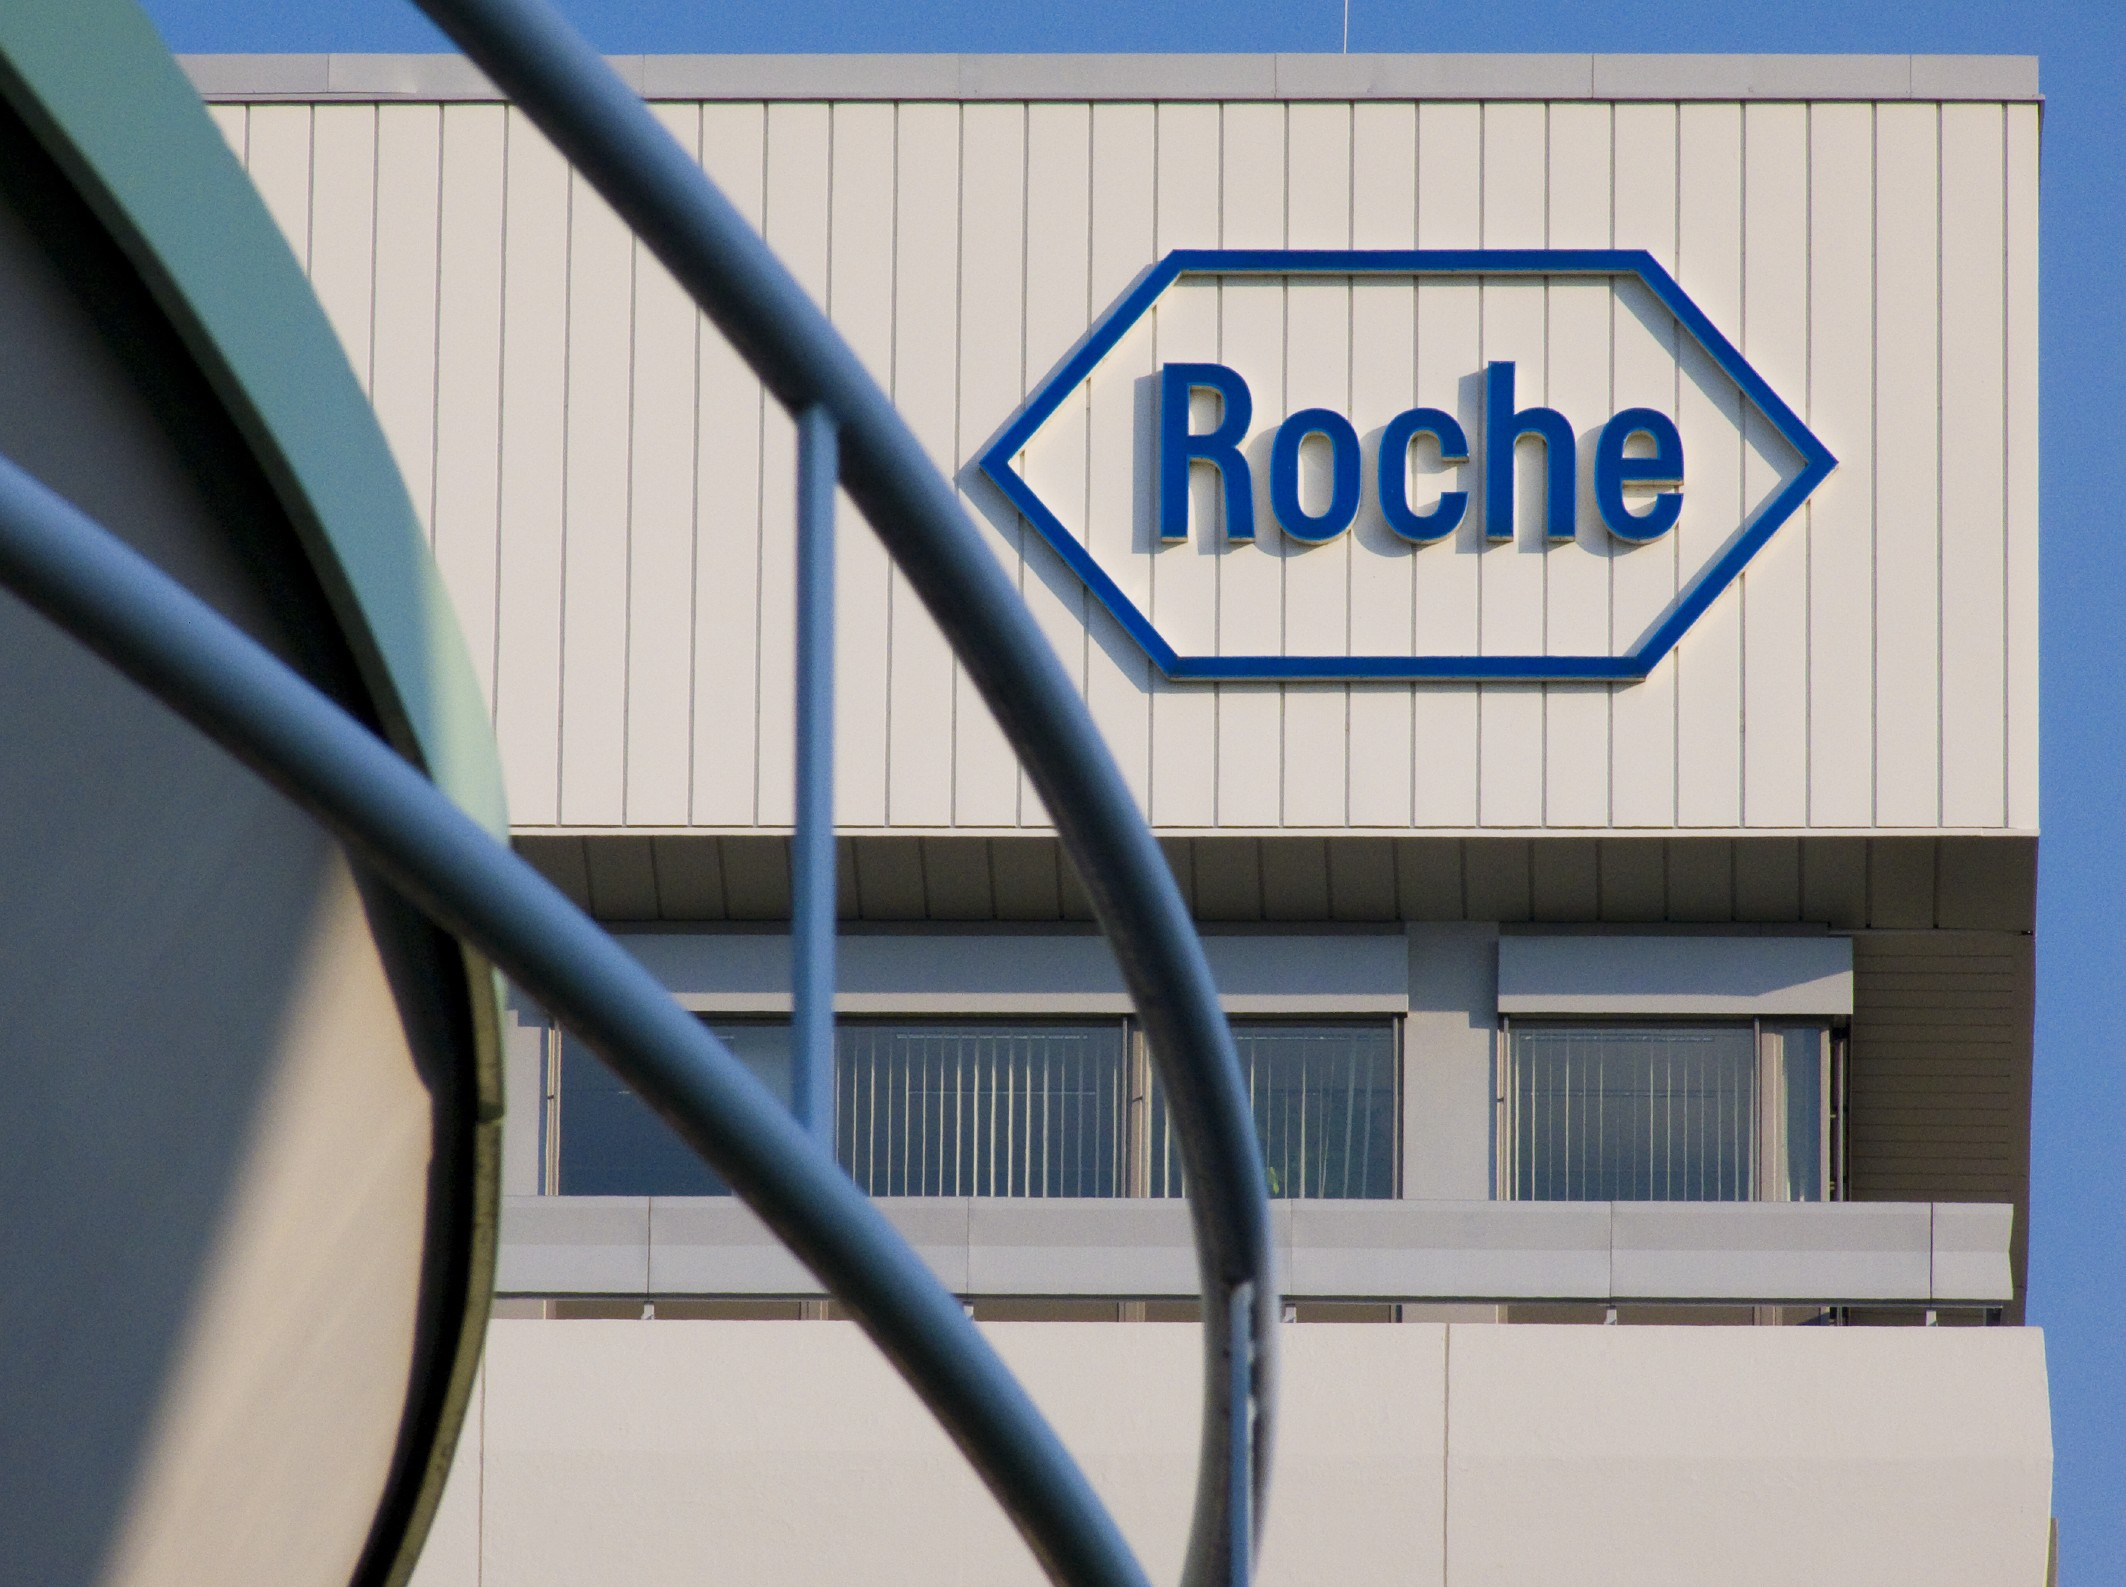 Roche faces further delay in $4.3bn Spark takeover